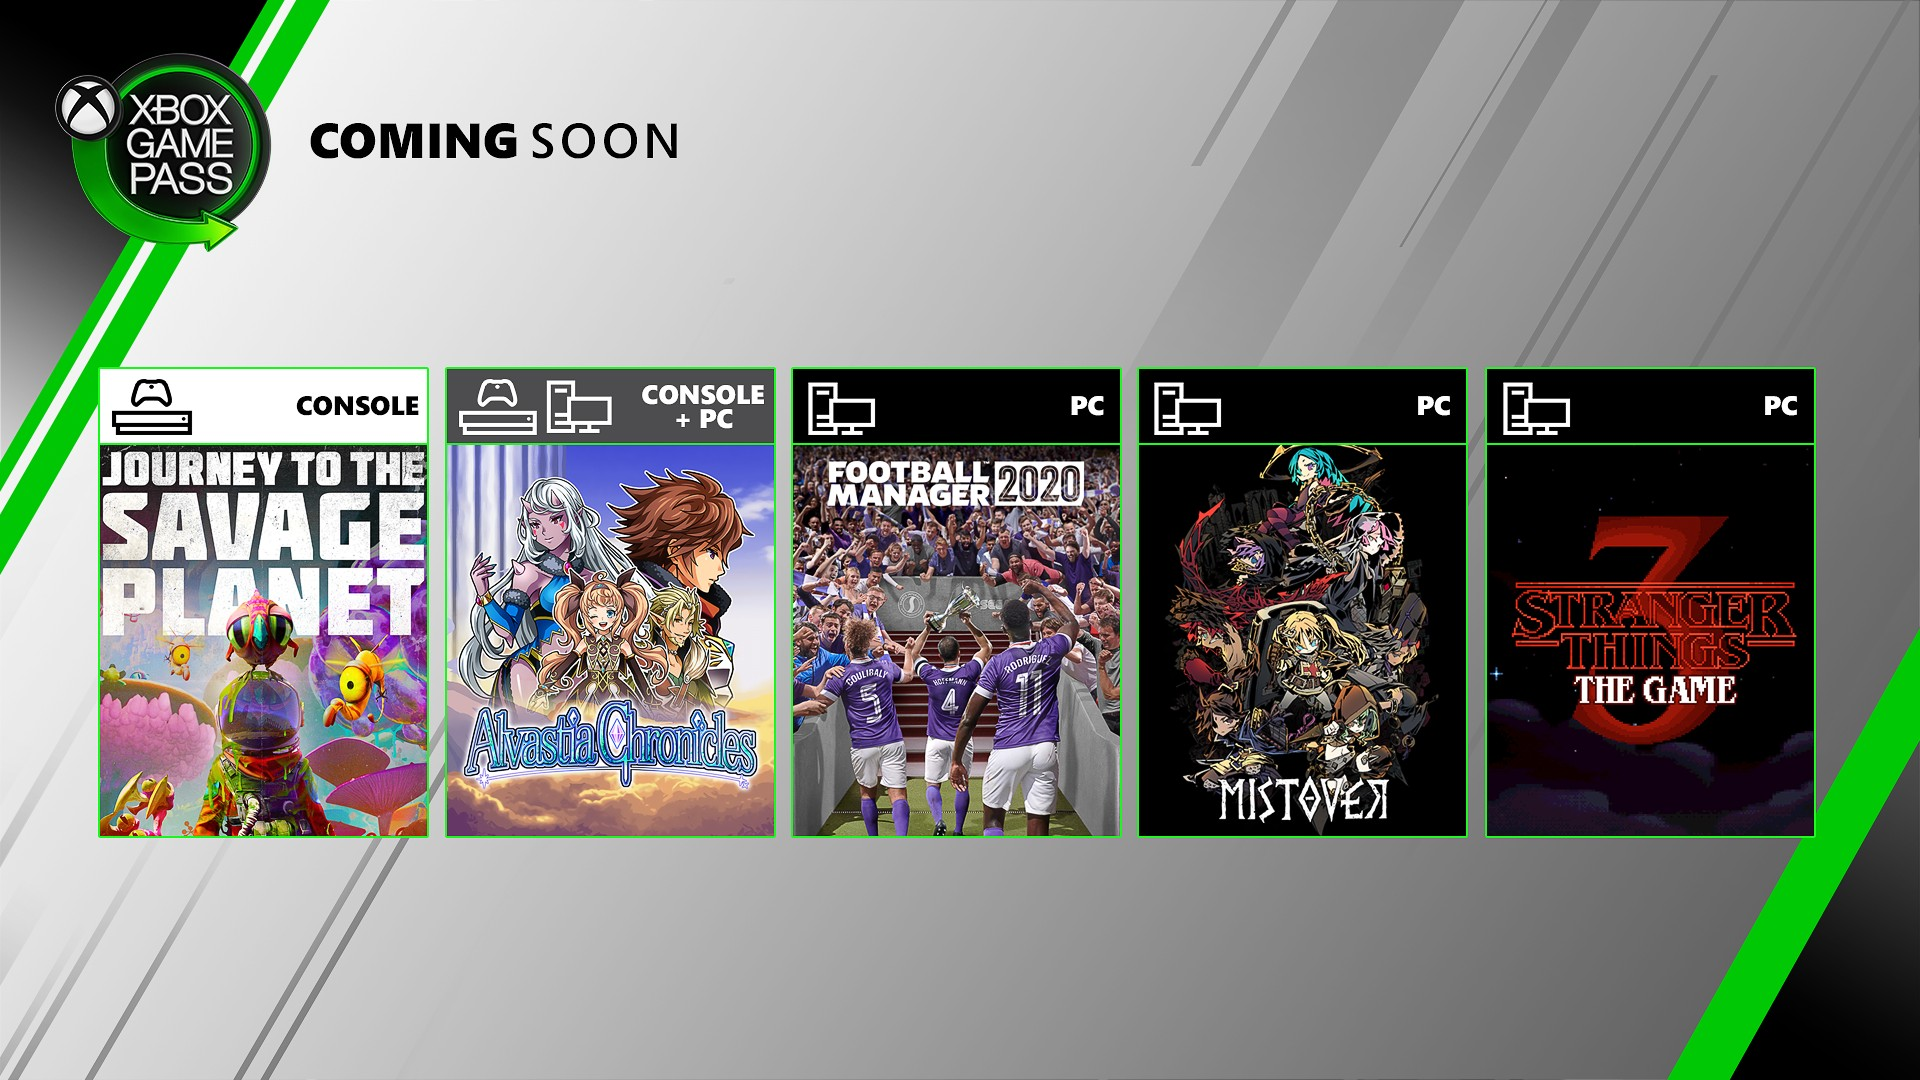 Coming Soon To Xbox Game Pass More Games And More Perks